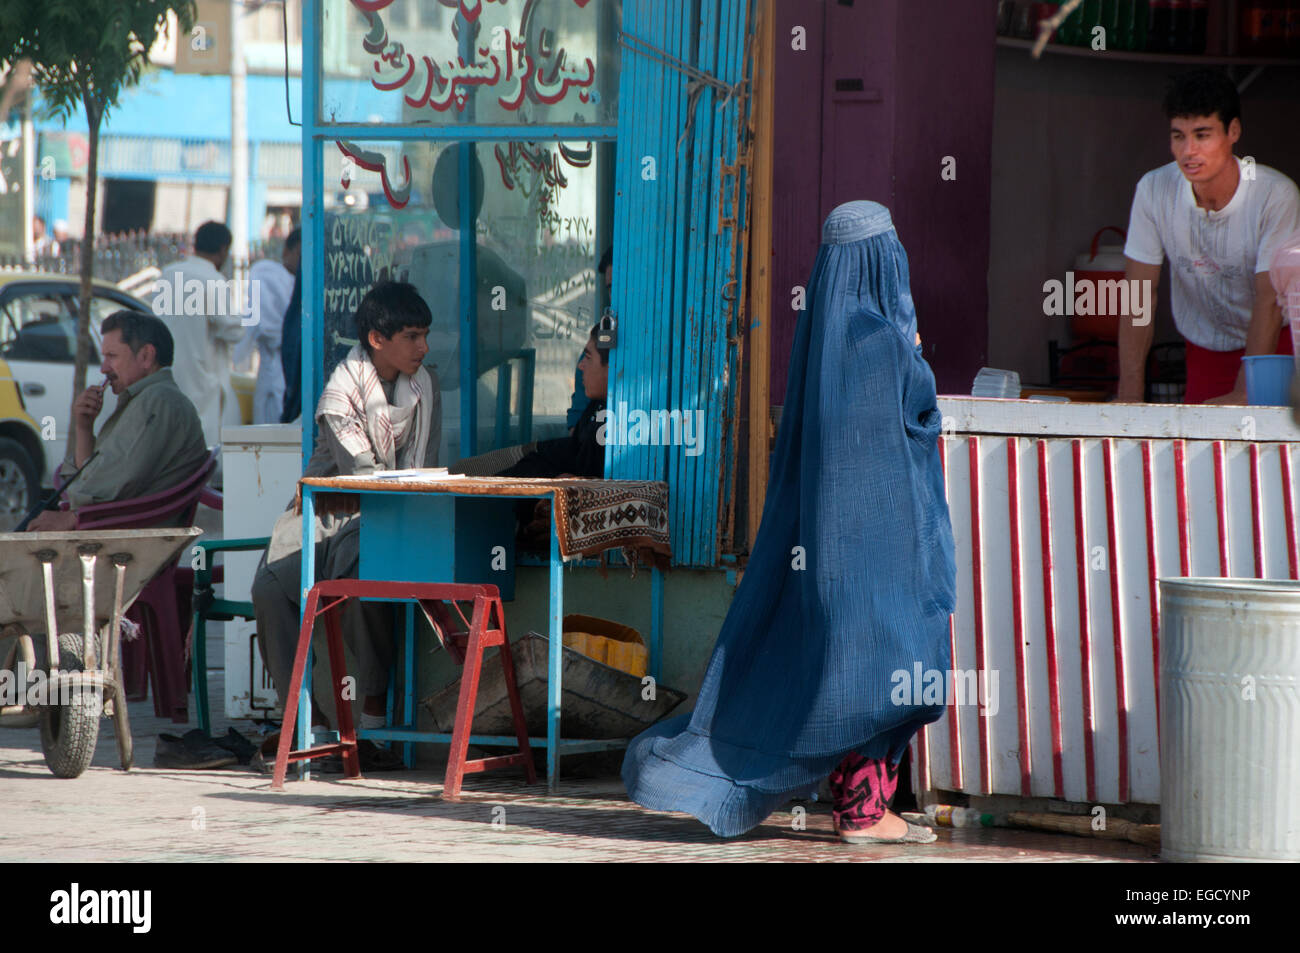 Mazar e Sharif streetscene - woman wearing a burqa buying an ice-cream - Stock Image